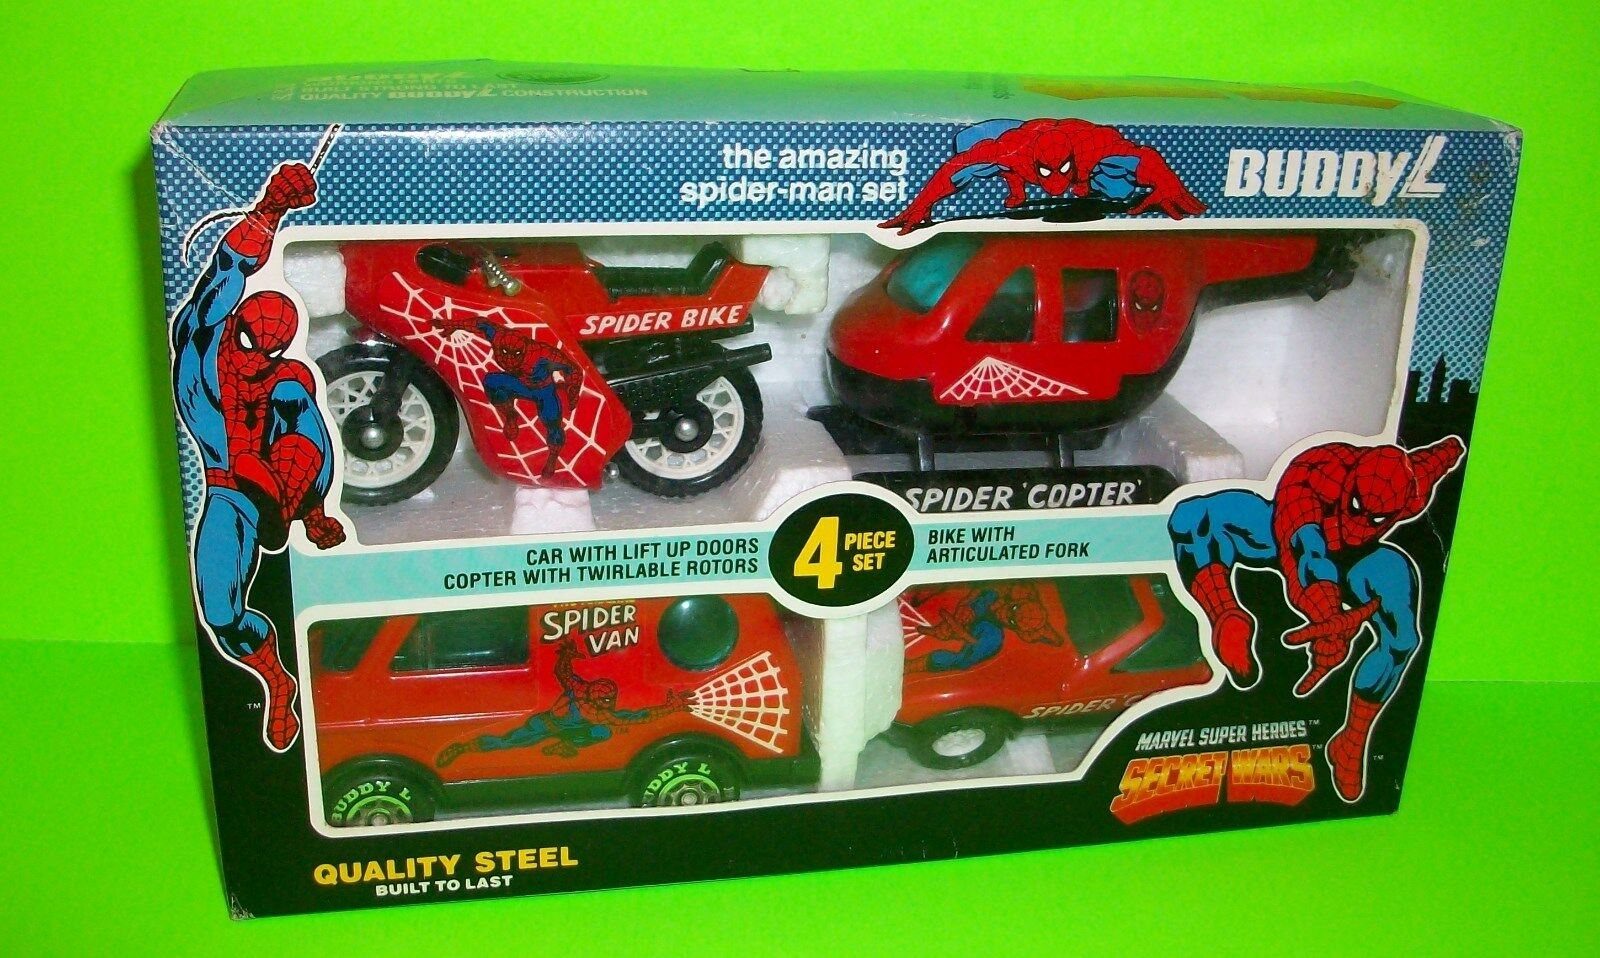 1984 VTG Buddy L SECRET VAROR 4 Fordon AMAZING SPIDERMAN SET Copter Van Bike bil